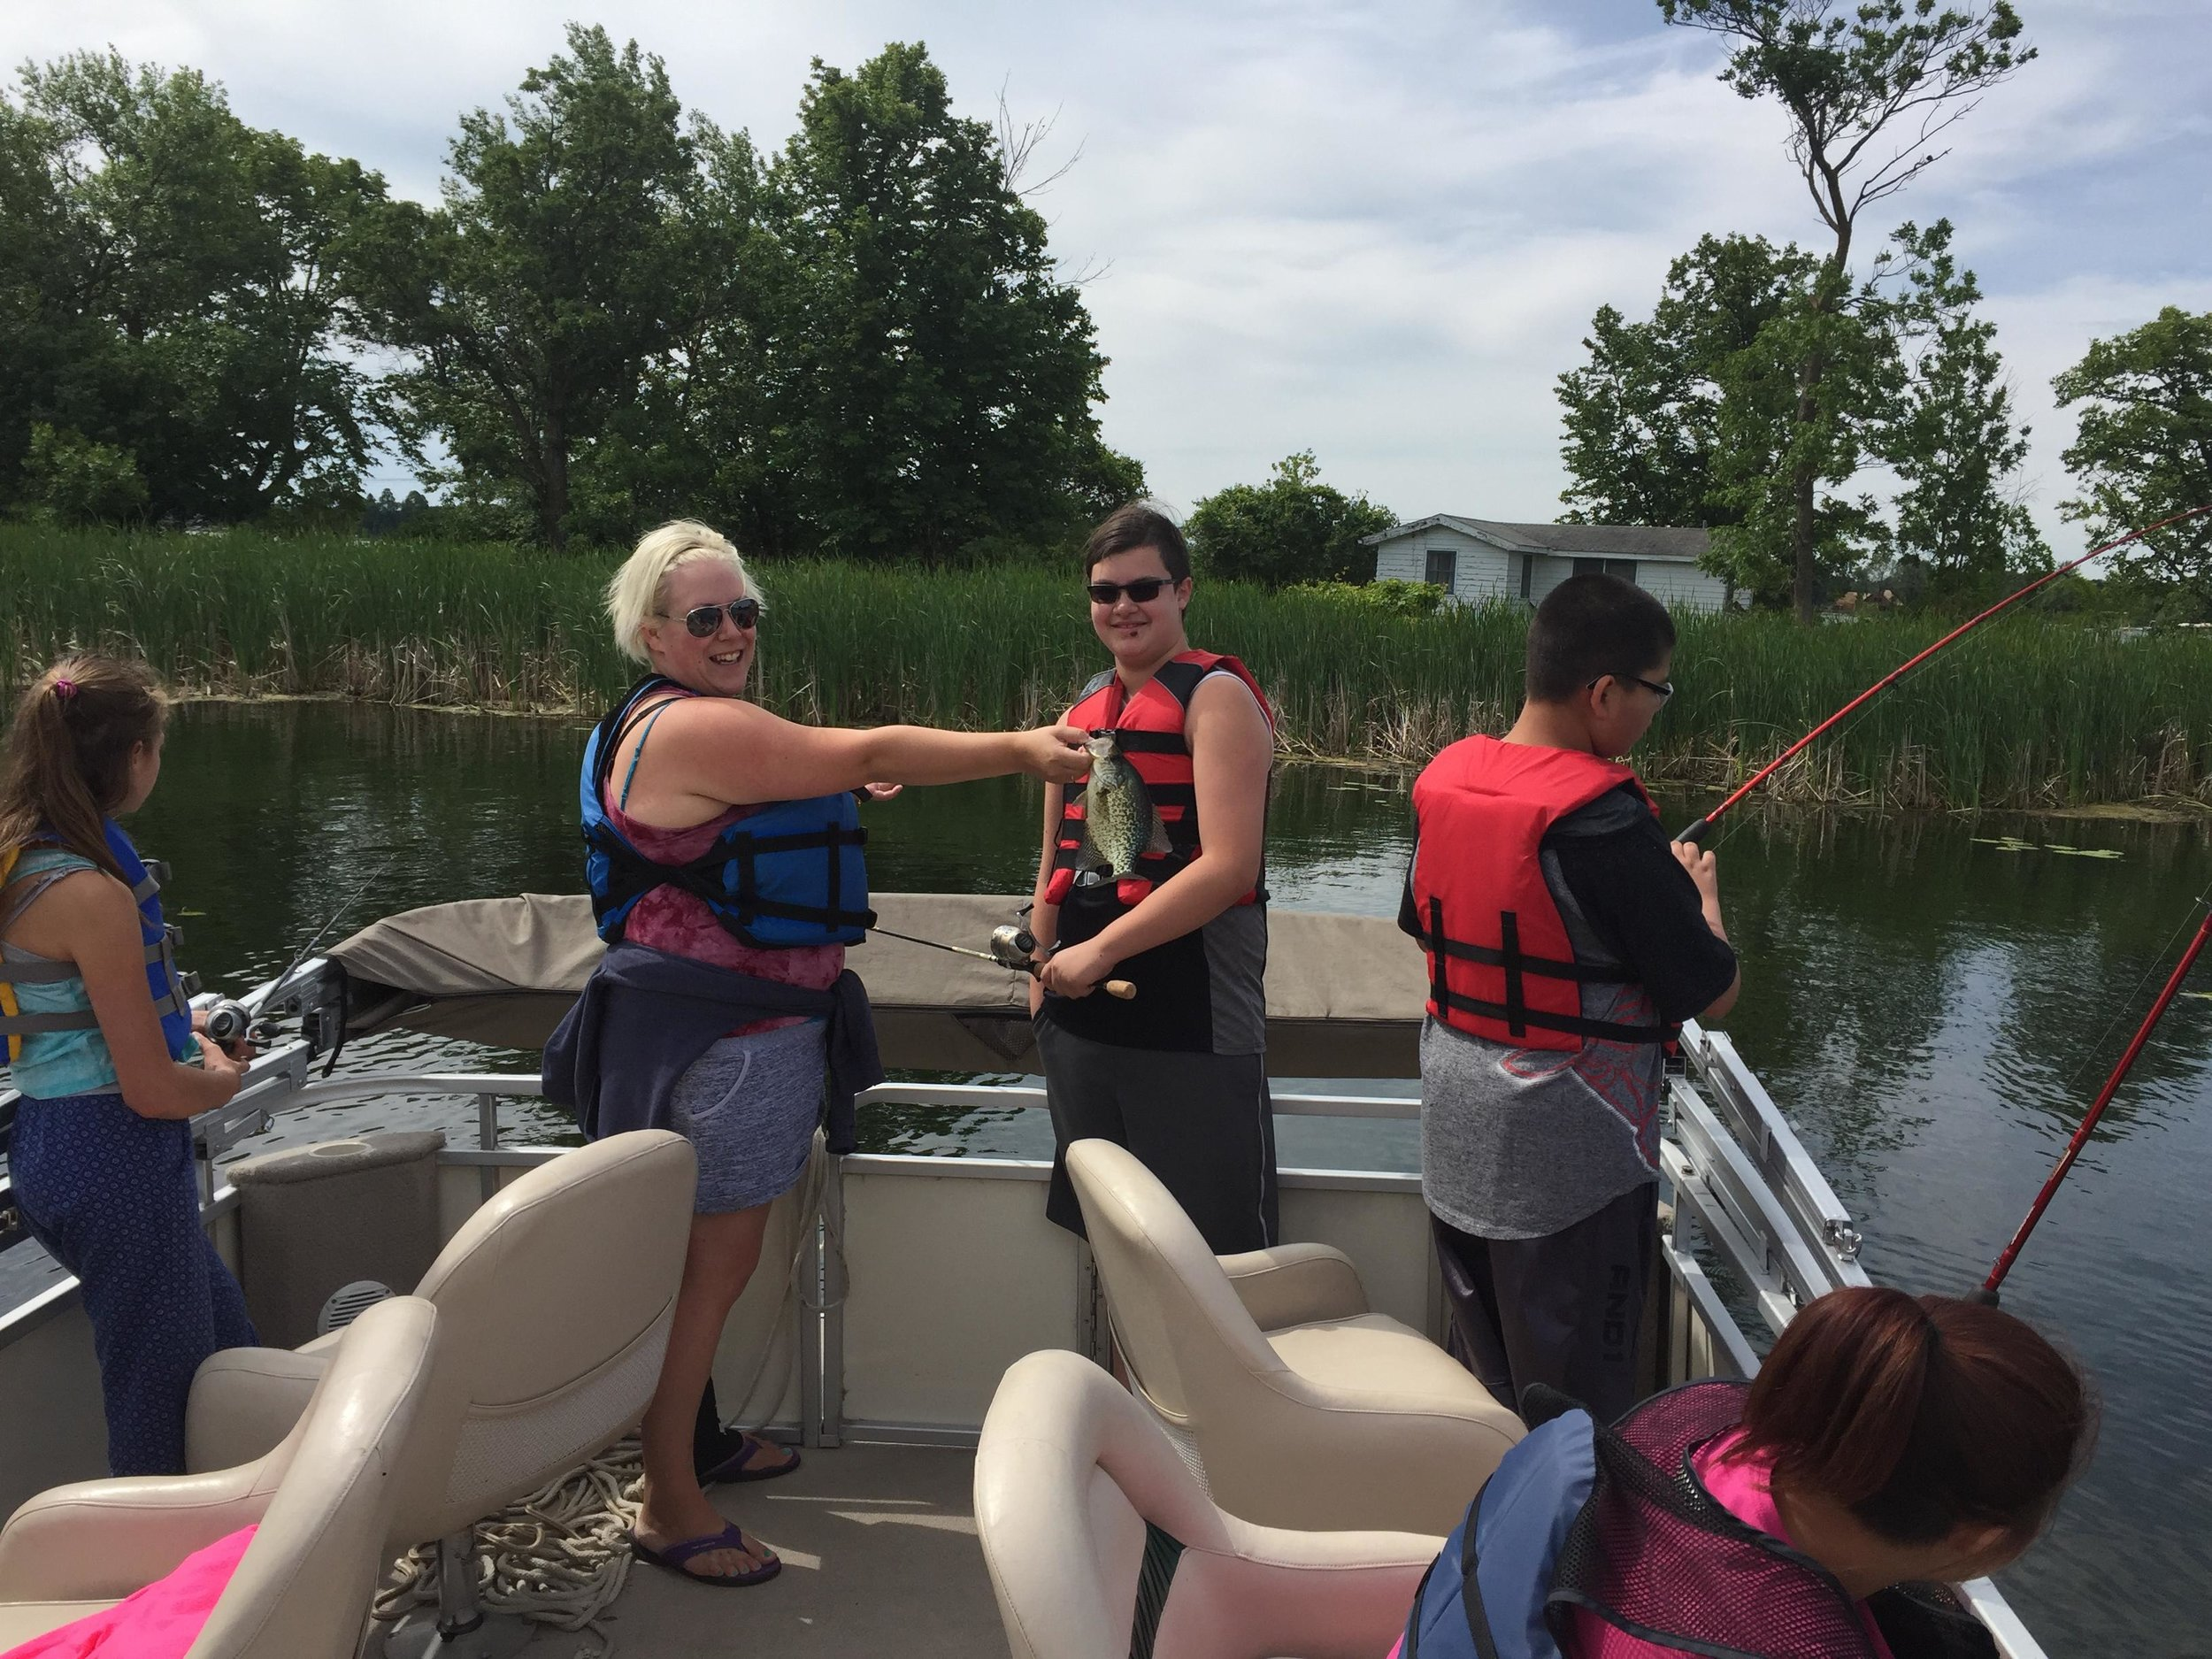 Youth groups including the local Boys & Girls Club also regularly schedule trips with the Detroit Lakes chapter of Let's Go Fishing. (Submitted photo)